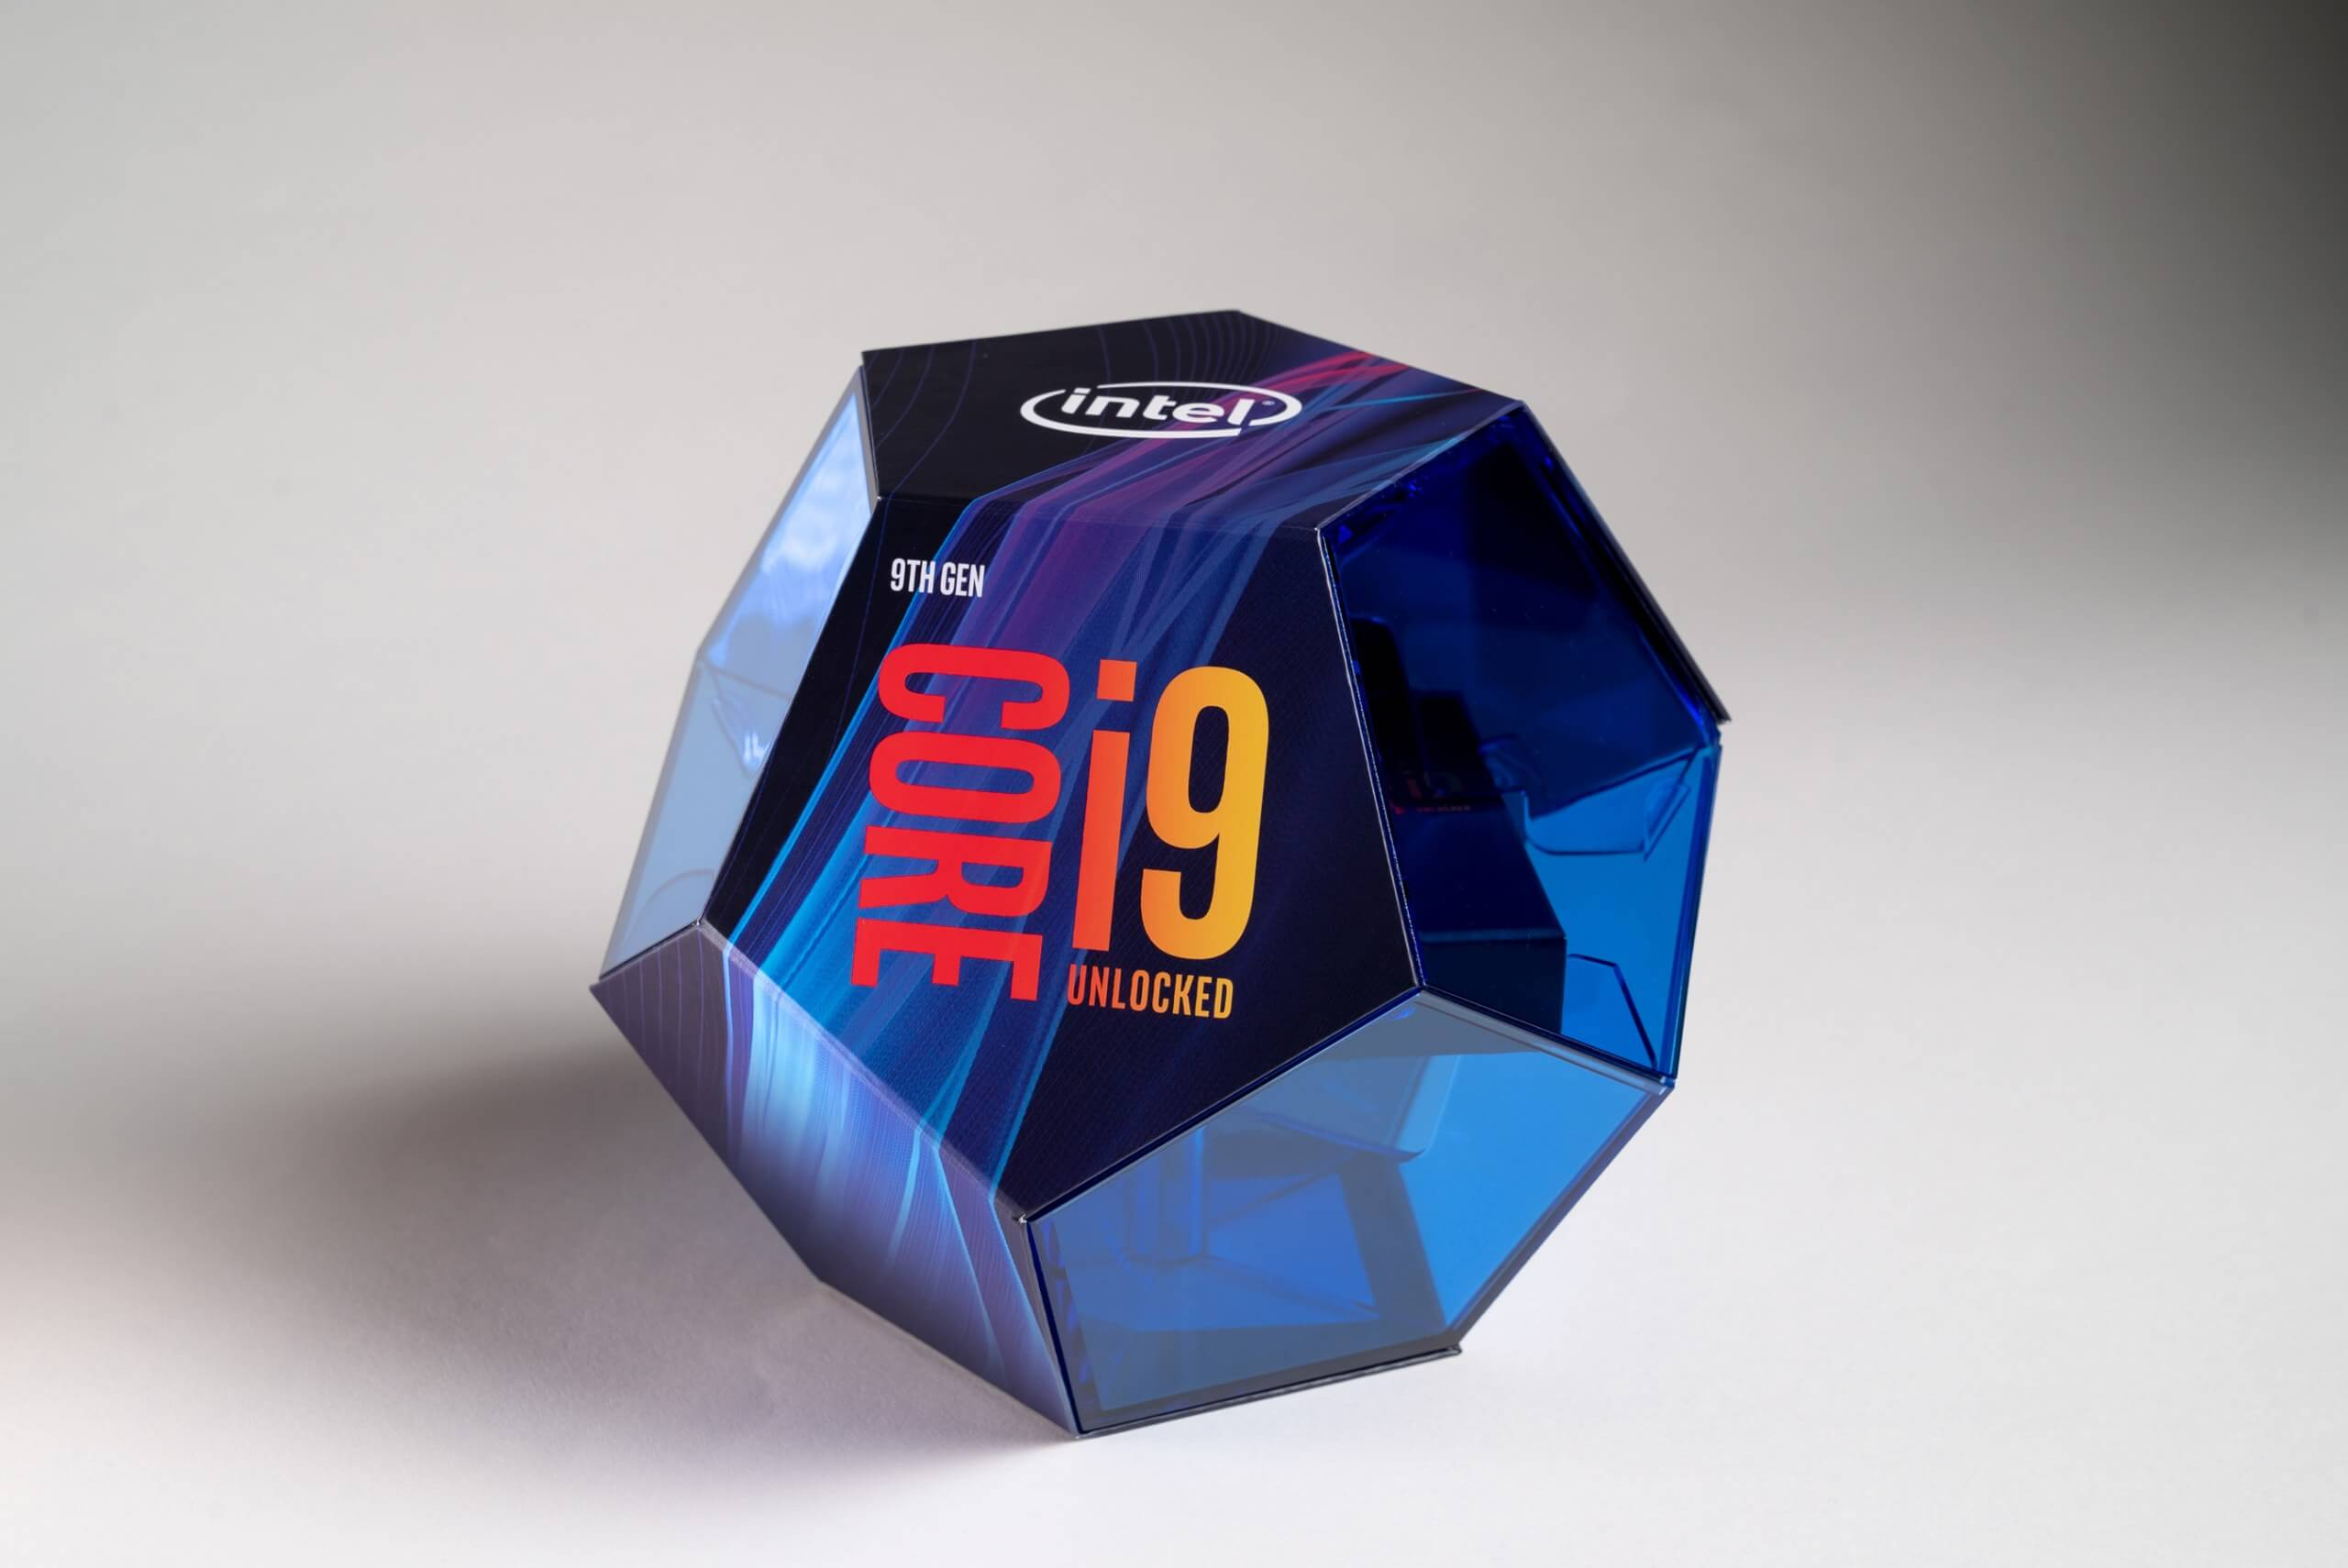 Intel Core i9-9900K and Core i7-9700K Review - TechSpot